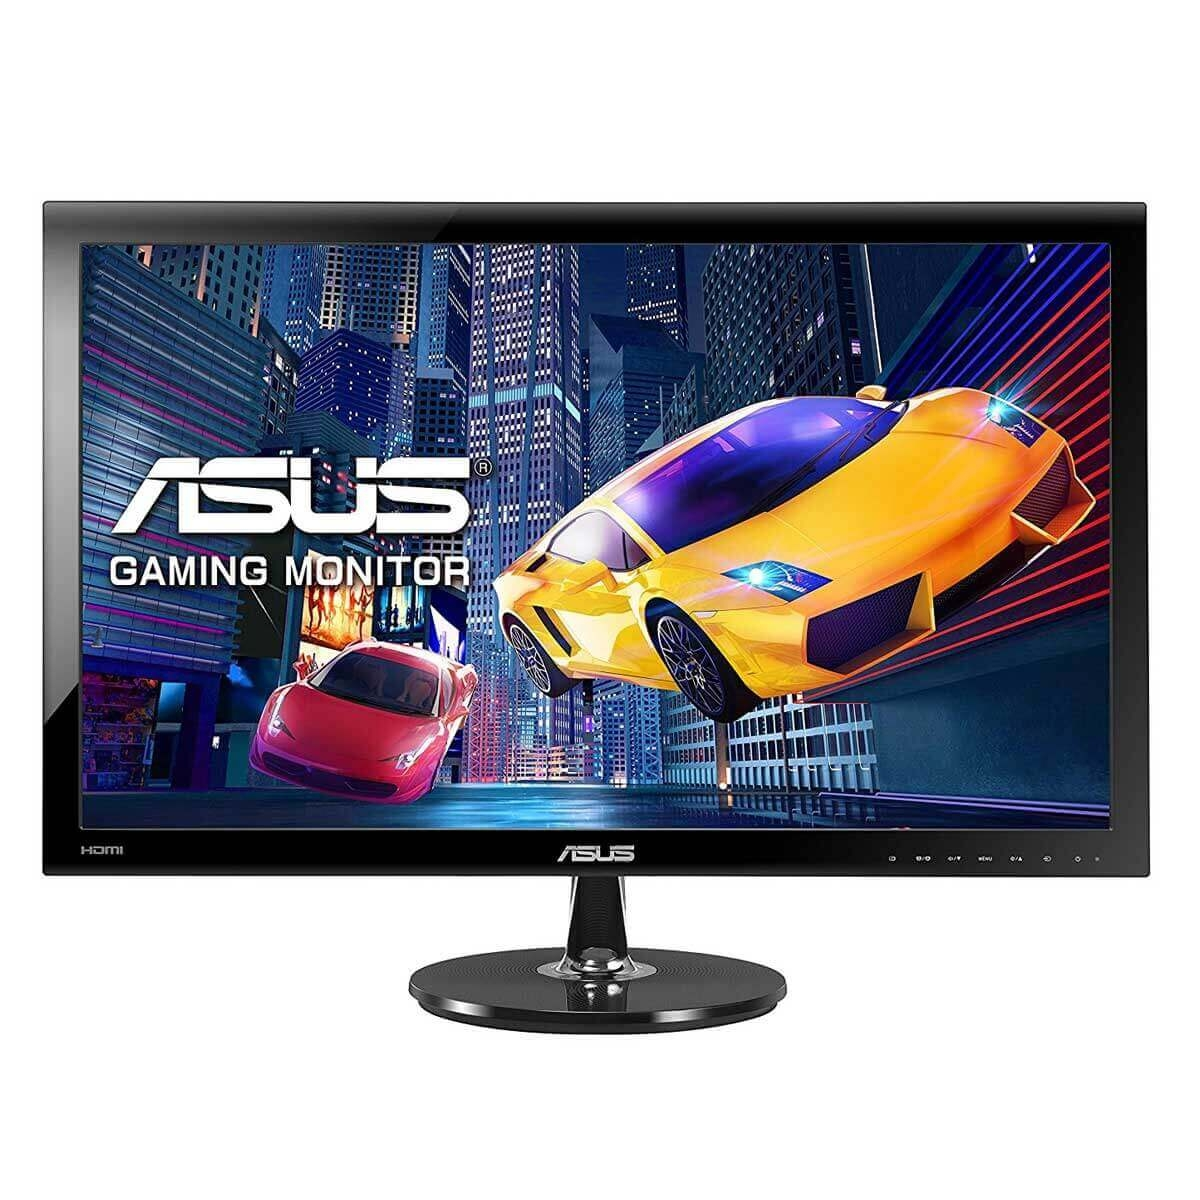 ASUS VS278H VGA Full HD LED Monitor 27 inch